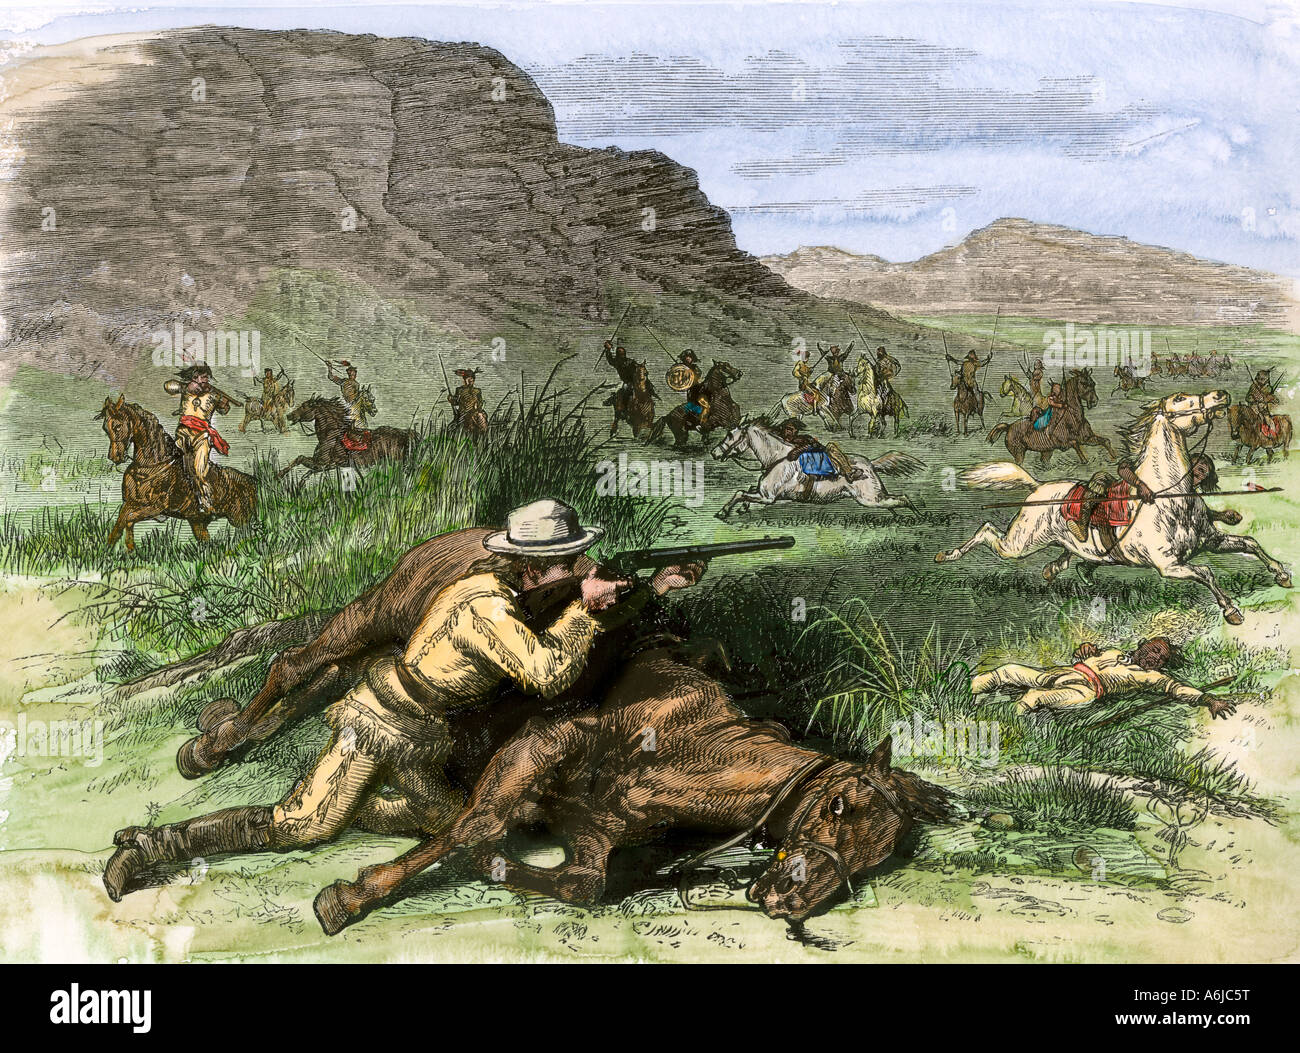 Scout for General Custer surrounded by hostile Arapahoes in the Black Hills 1874. Hand-colored woodcut - Stock Image